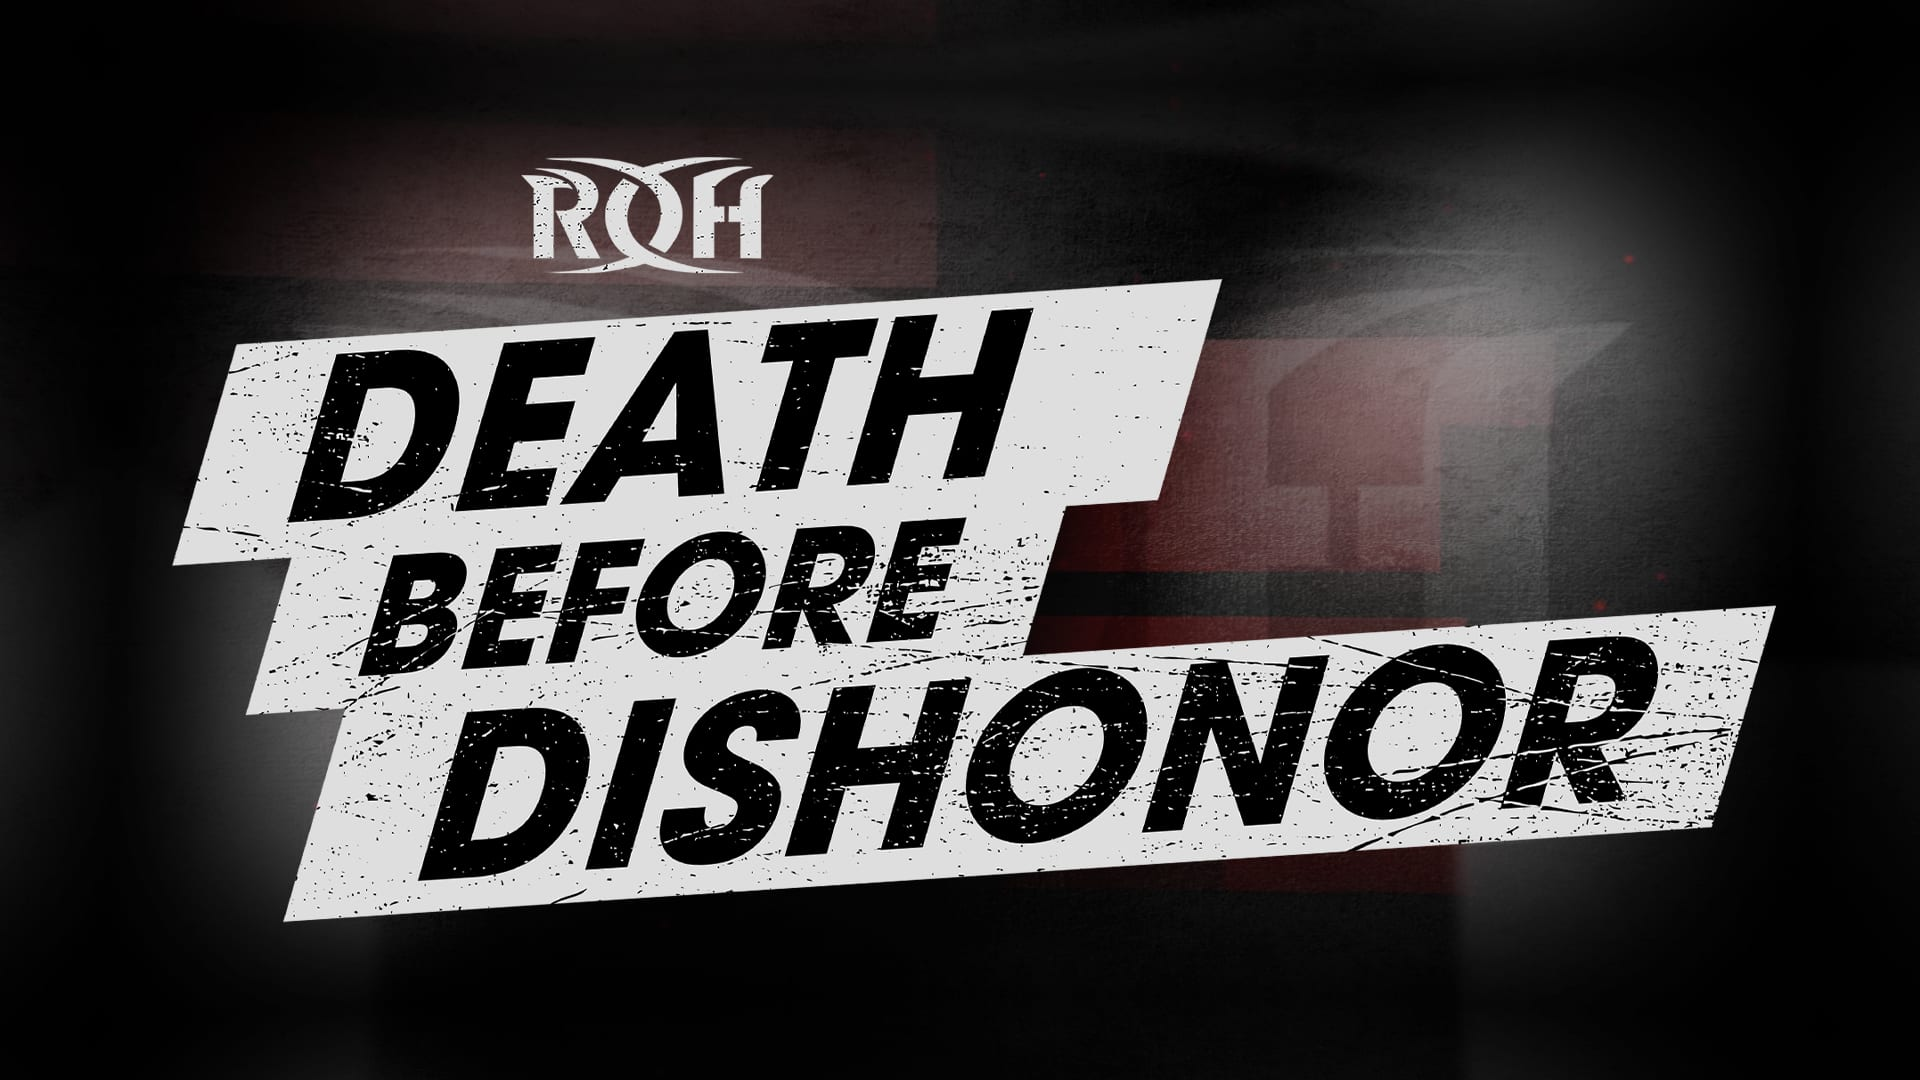 ROH to crown its new Women's Champion at Death Before Dishonor on Sept. 12